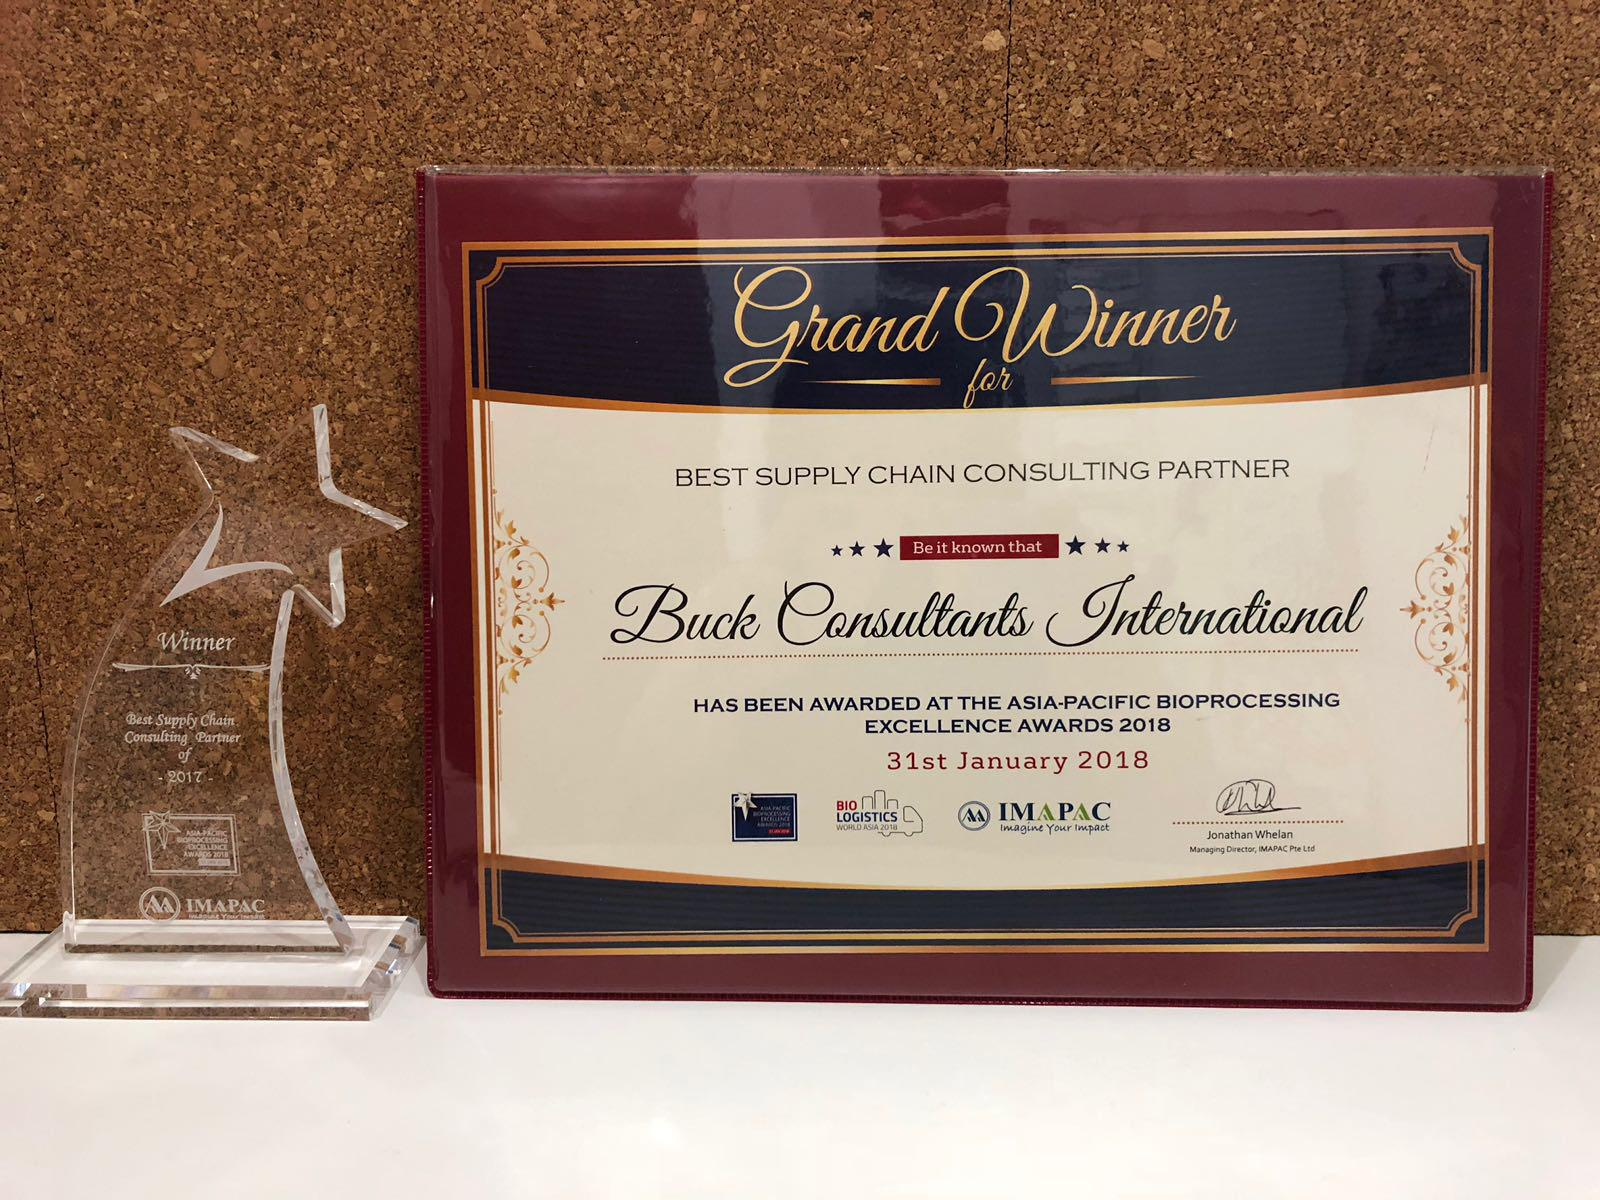 Buck Consultants International wins industry award for Best Supply Chain Consulting Partner in Asia